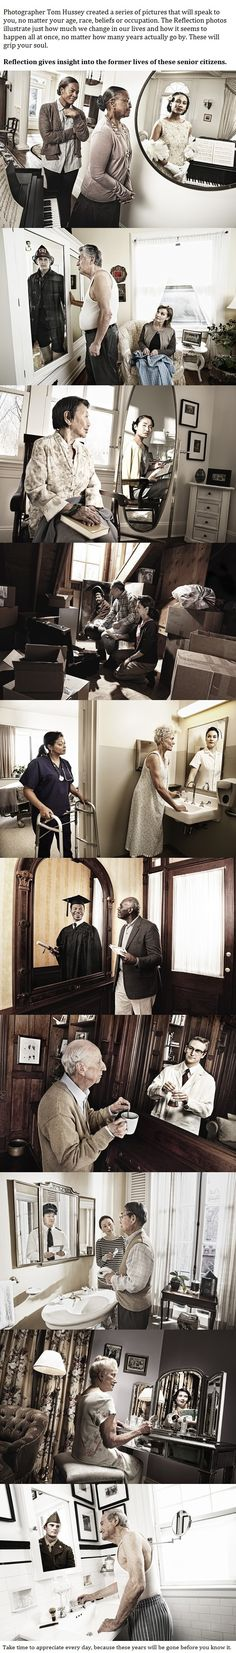 Reflection - When You Look Closely At These 10 Photos, You'll See Why They Mean So Much. My favorite is the woman being cared for by a nurse and in her reflection you can see she was once the nurse not the patient. Break My Heart, Amazing, Awesome, Faith In Humanity Restored, To Infinity And Beyond, Photomontage, Looks Cool, Belle Photo, In This World